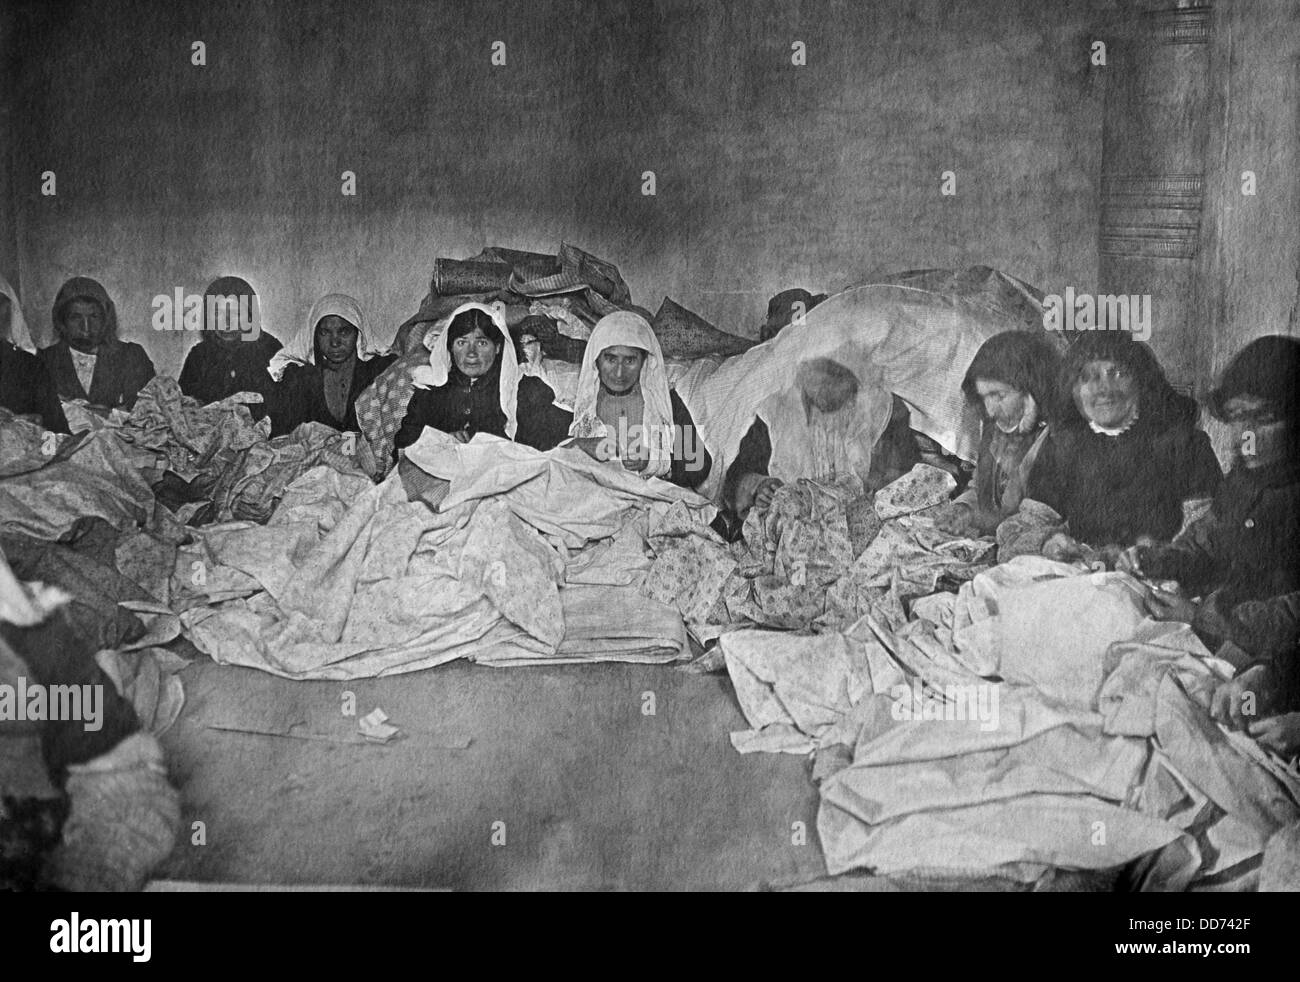 Armenian women sewing covers for blankets. Yerevan. Ca. 1915-1922. Thousands of survivors of the Armenian Genocide Stock Photo